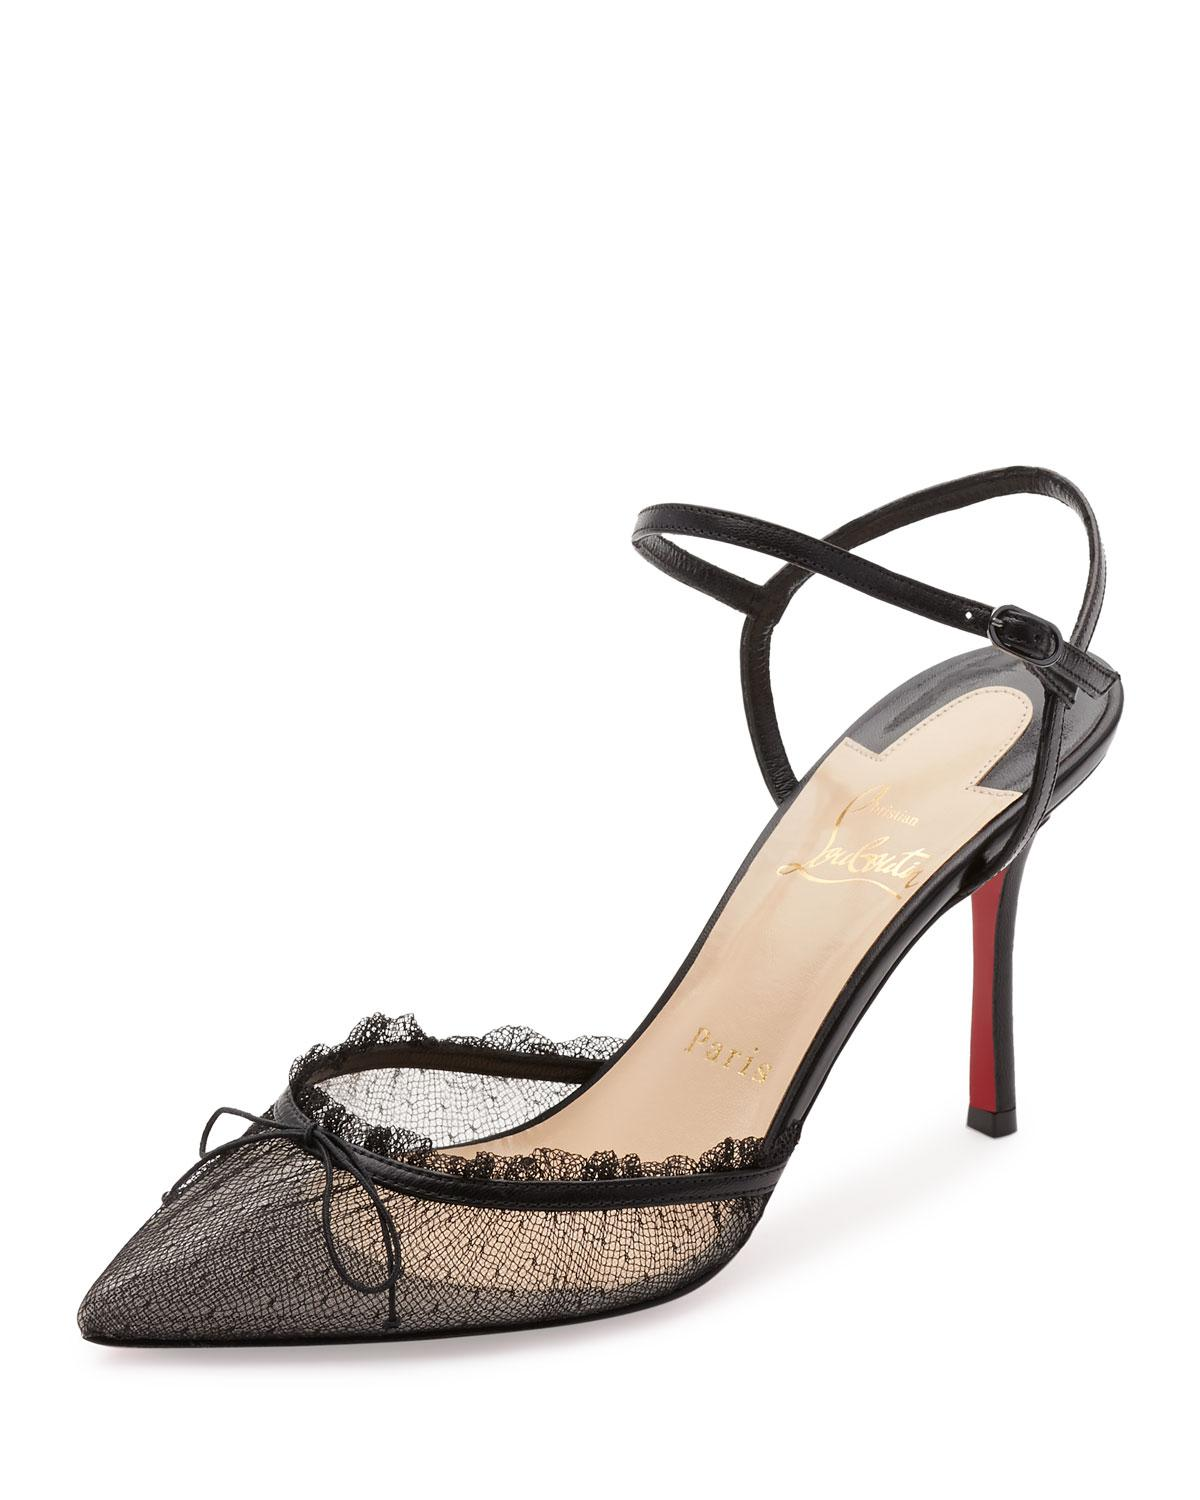 f1db07a8633 ... get lyst christian louboutin travalata lace ankle strap red sole pump  a02ba 6f2e3